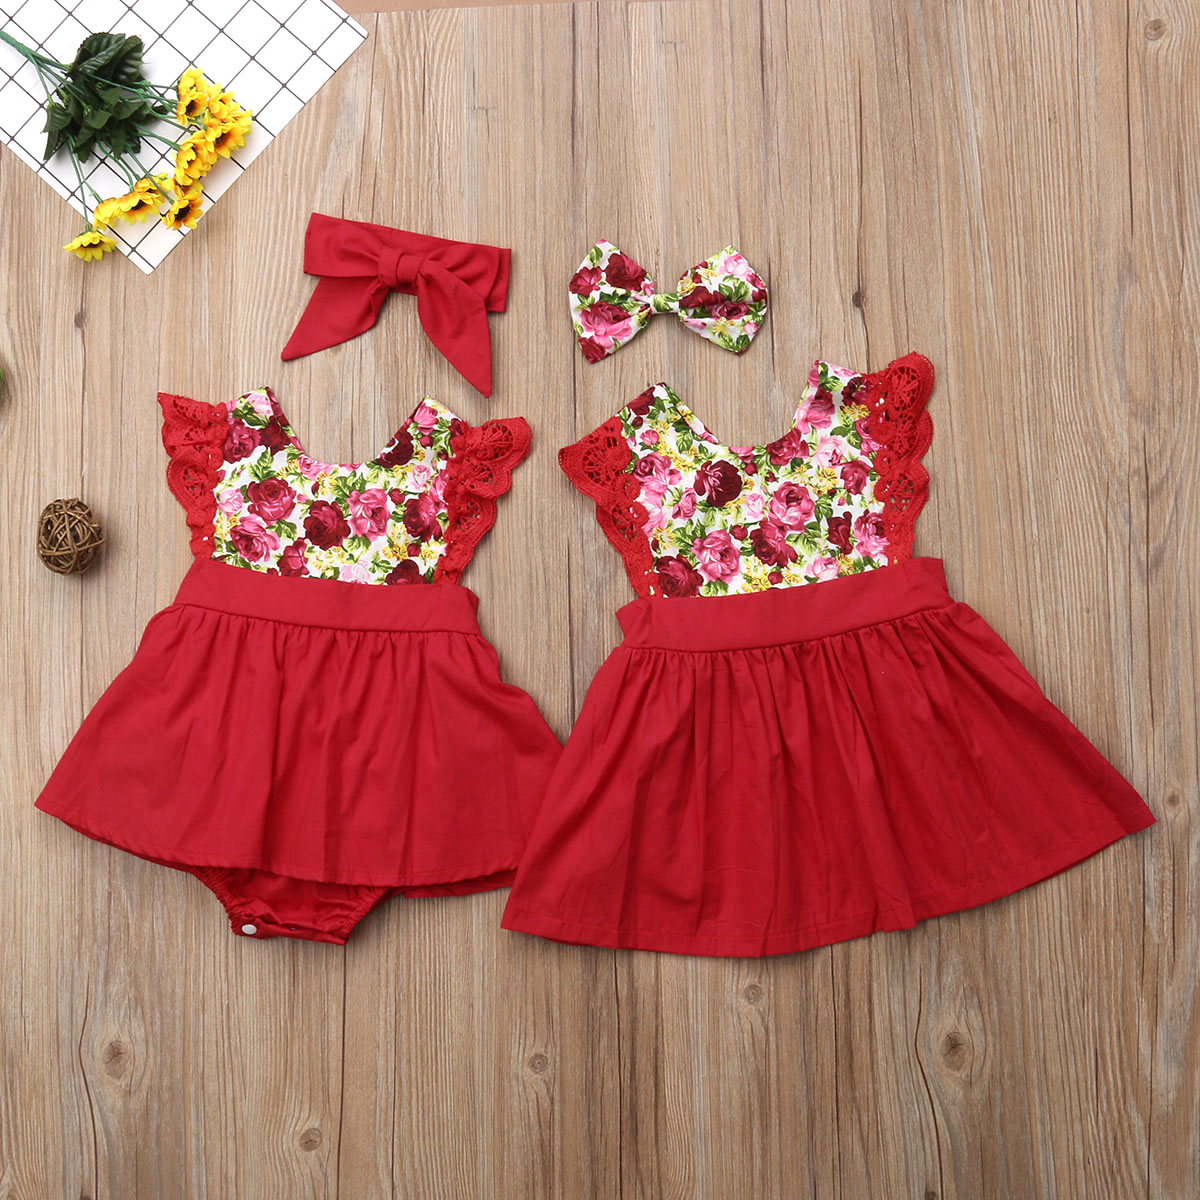 Little Girls Sister Matching Outfits Xmas Gift Toddler Baby Girl Kid Lace Romper Dress Party Dresses Princess Clothing